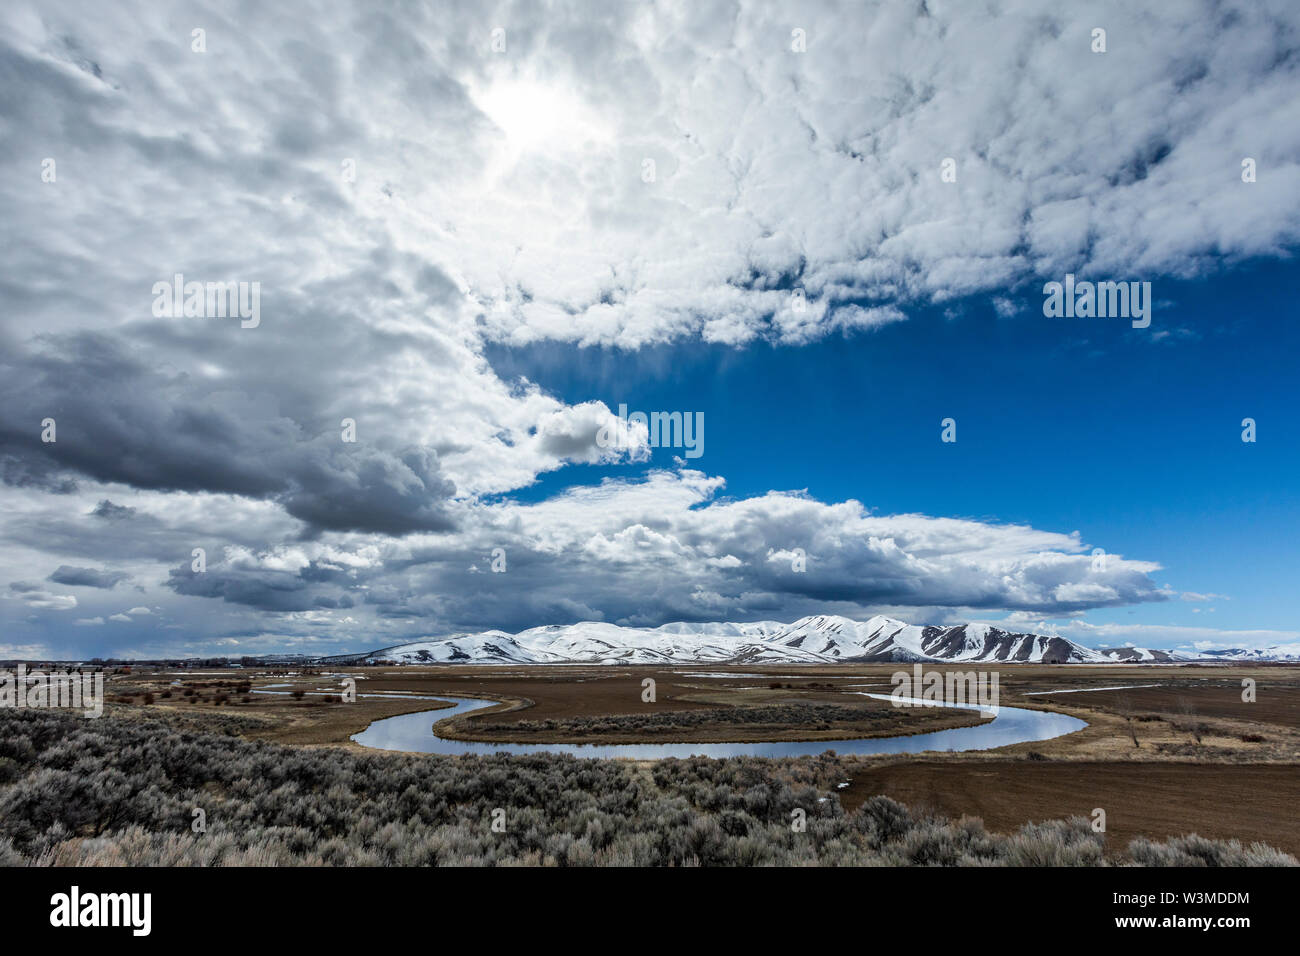 River and mountains under clouds in Picabo, Idaho - Stock Image